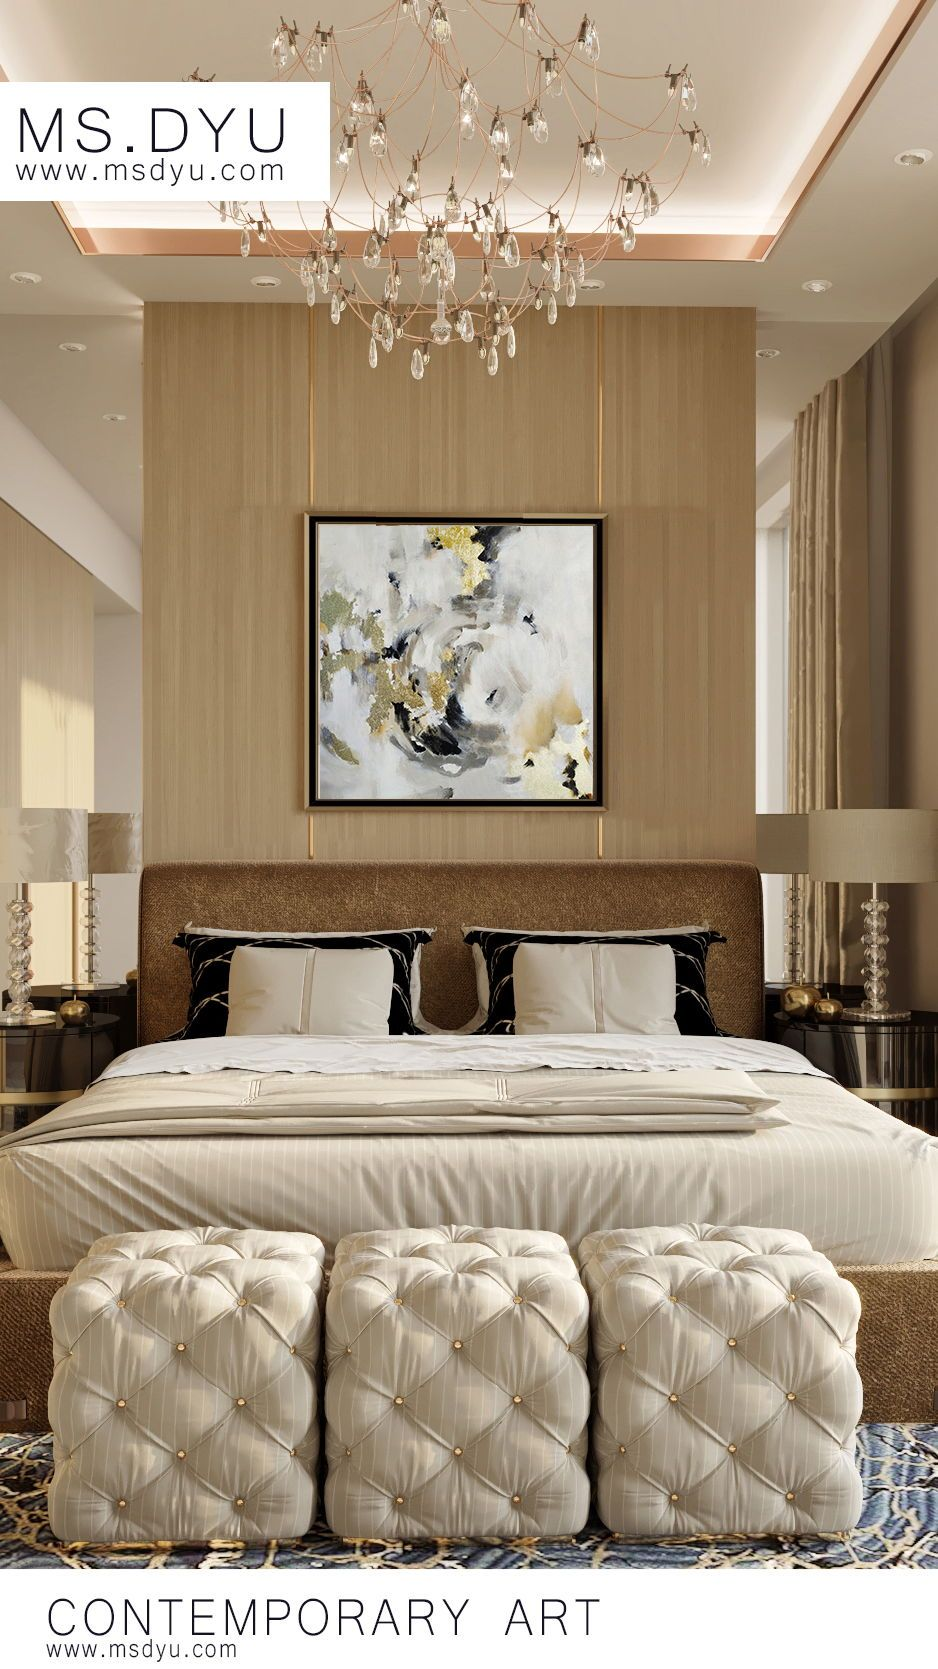 Master Bedroom Decoration With Luxury Oil Painting Hanging Above Bed Master Bedroom Interior Design Luxury House Interior Design Interior Design Luxury master bedroom paint